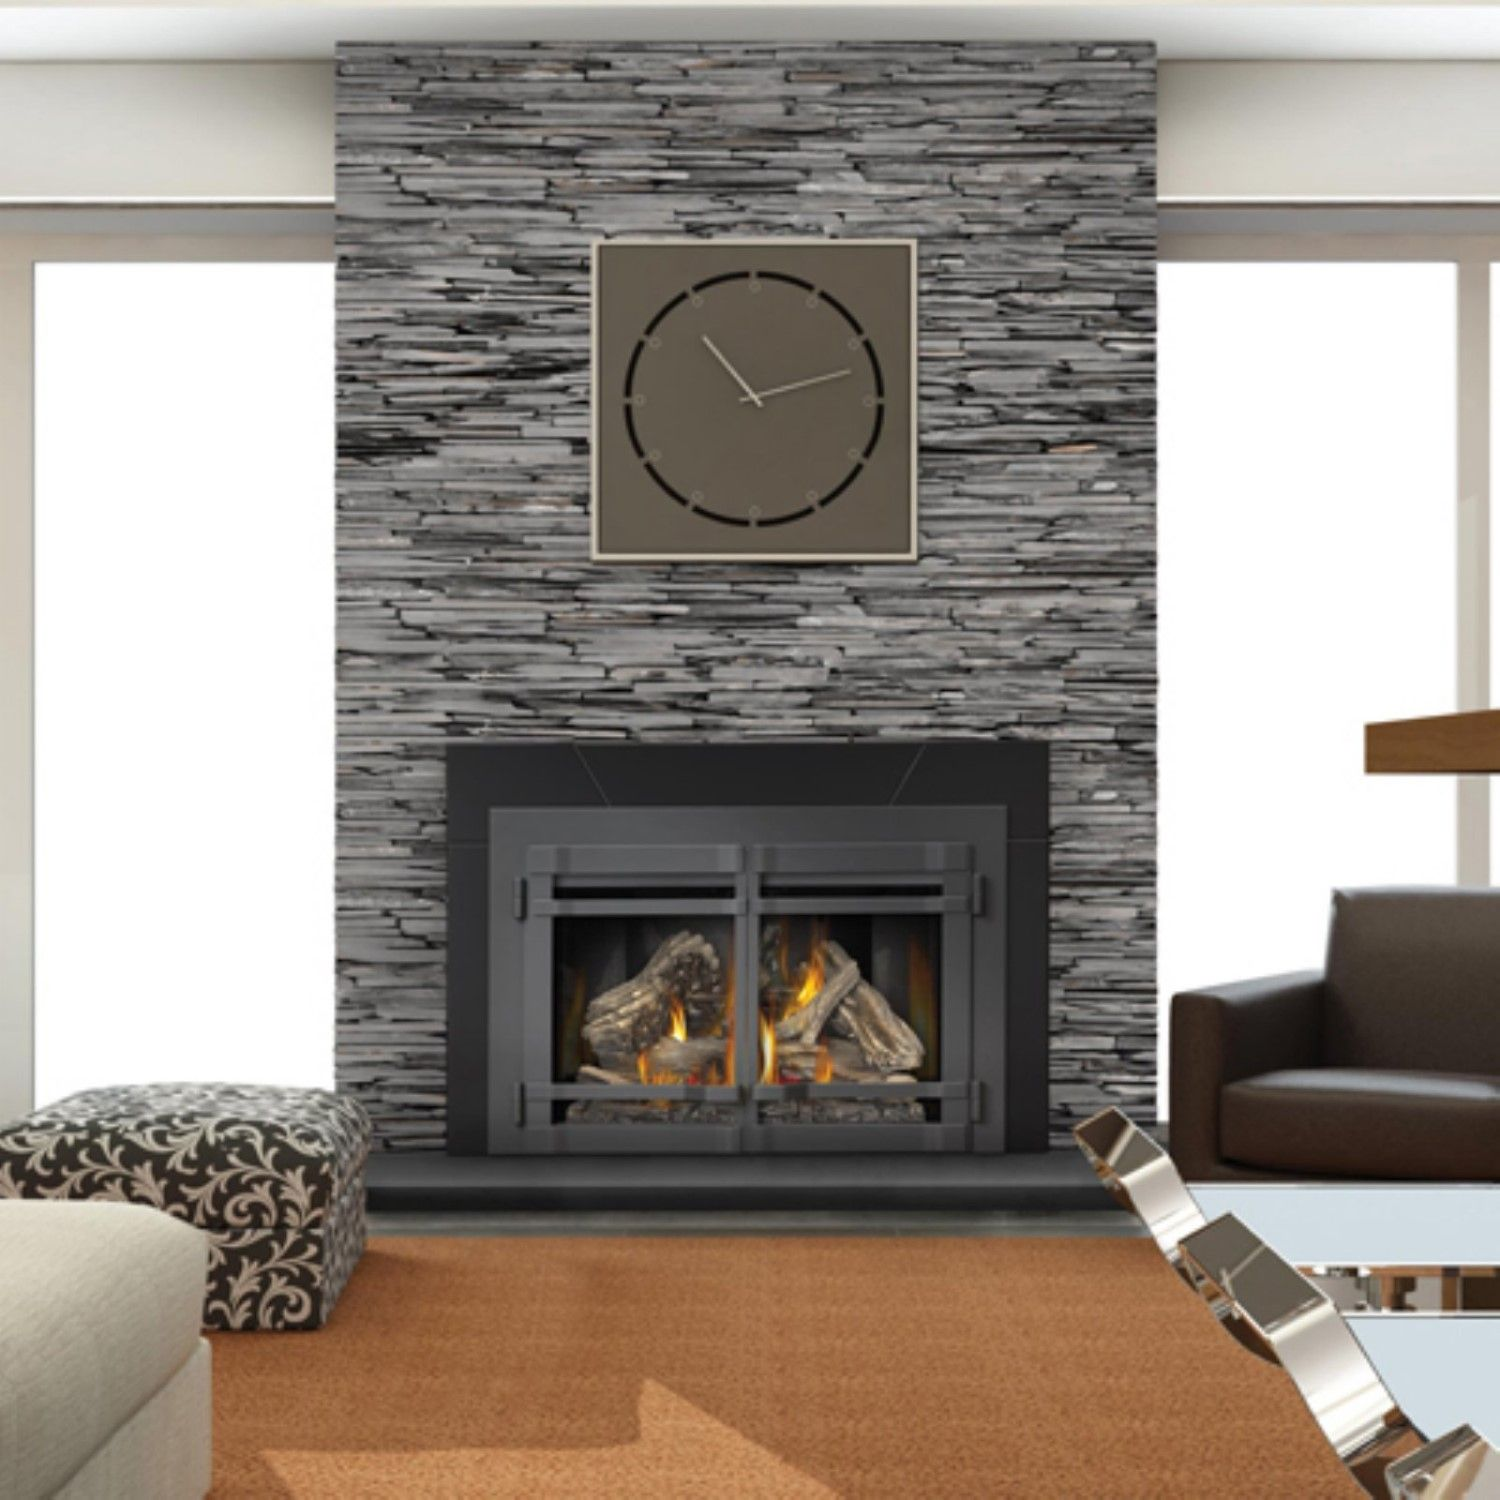 Give Your Standard Masonry Fireplace A Warm And Stylish Upgrade With The Napoleon Large Dir Vented Gas Fireplace Gas Fireplace Insert Direct Vent Gas Fireplace